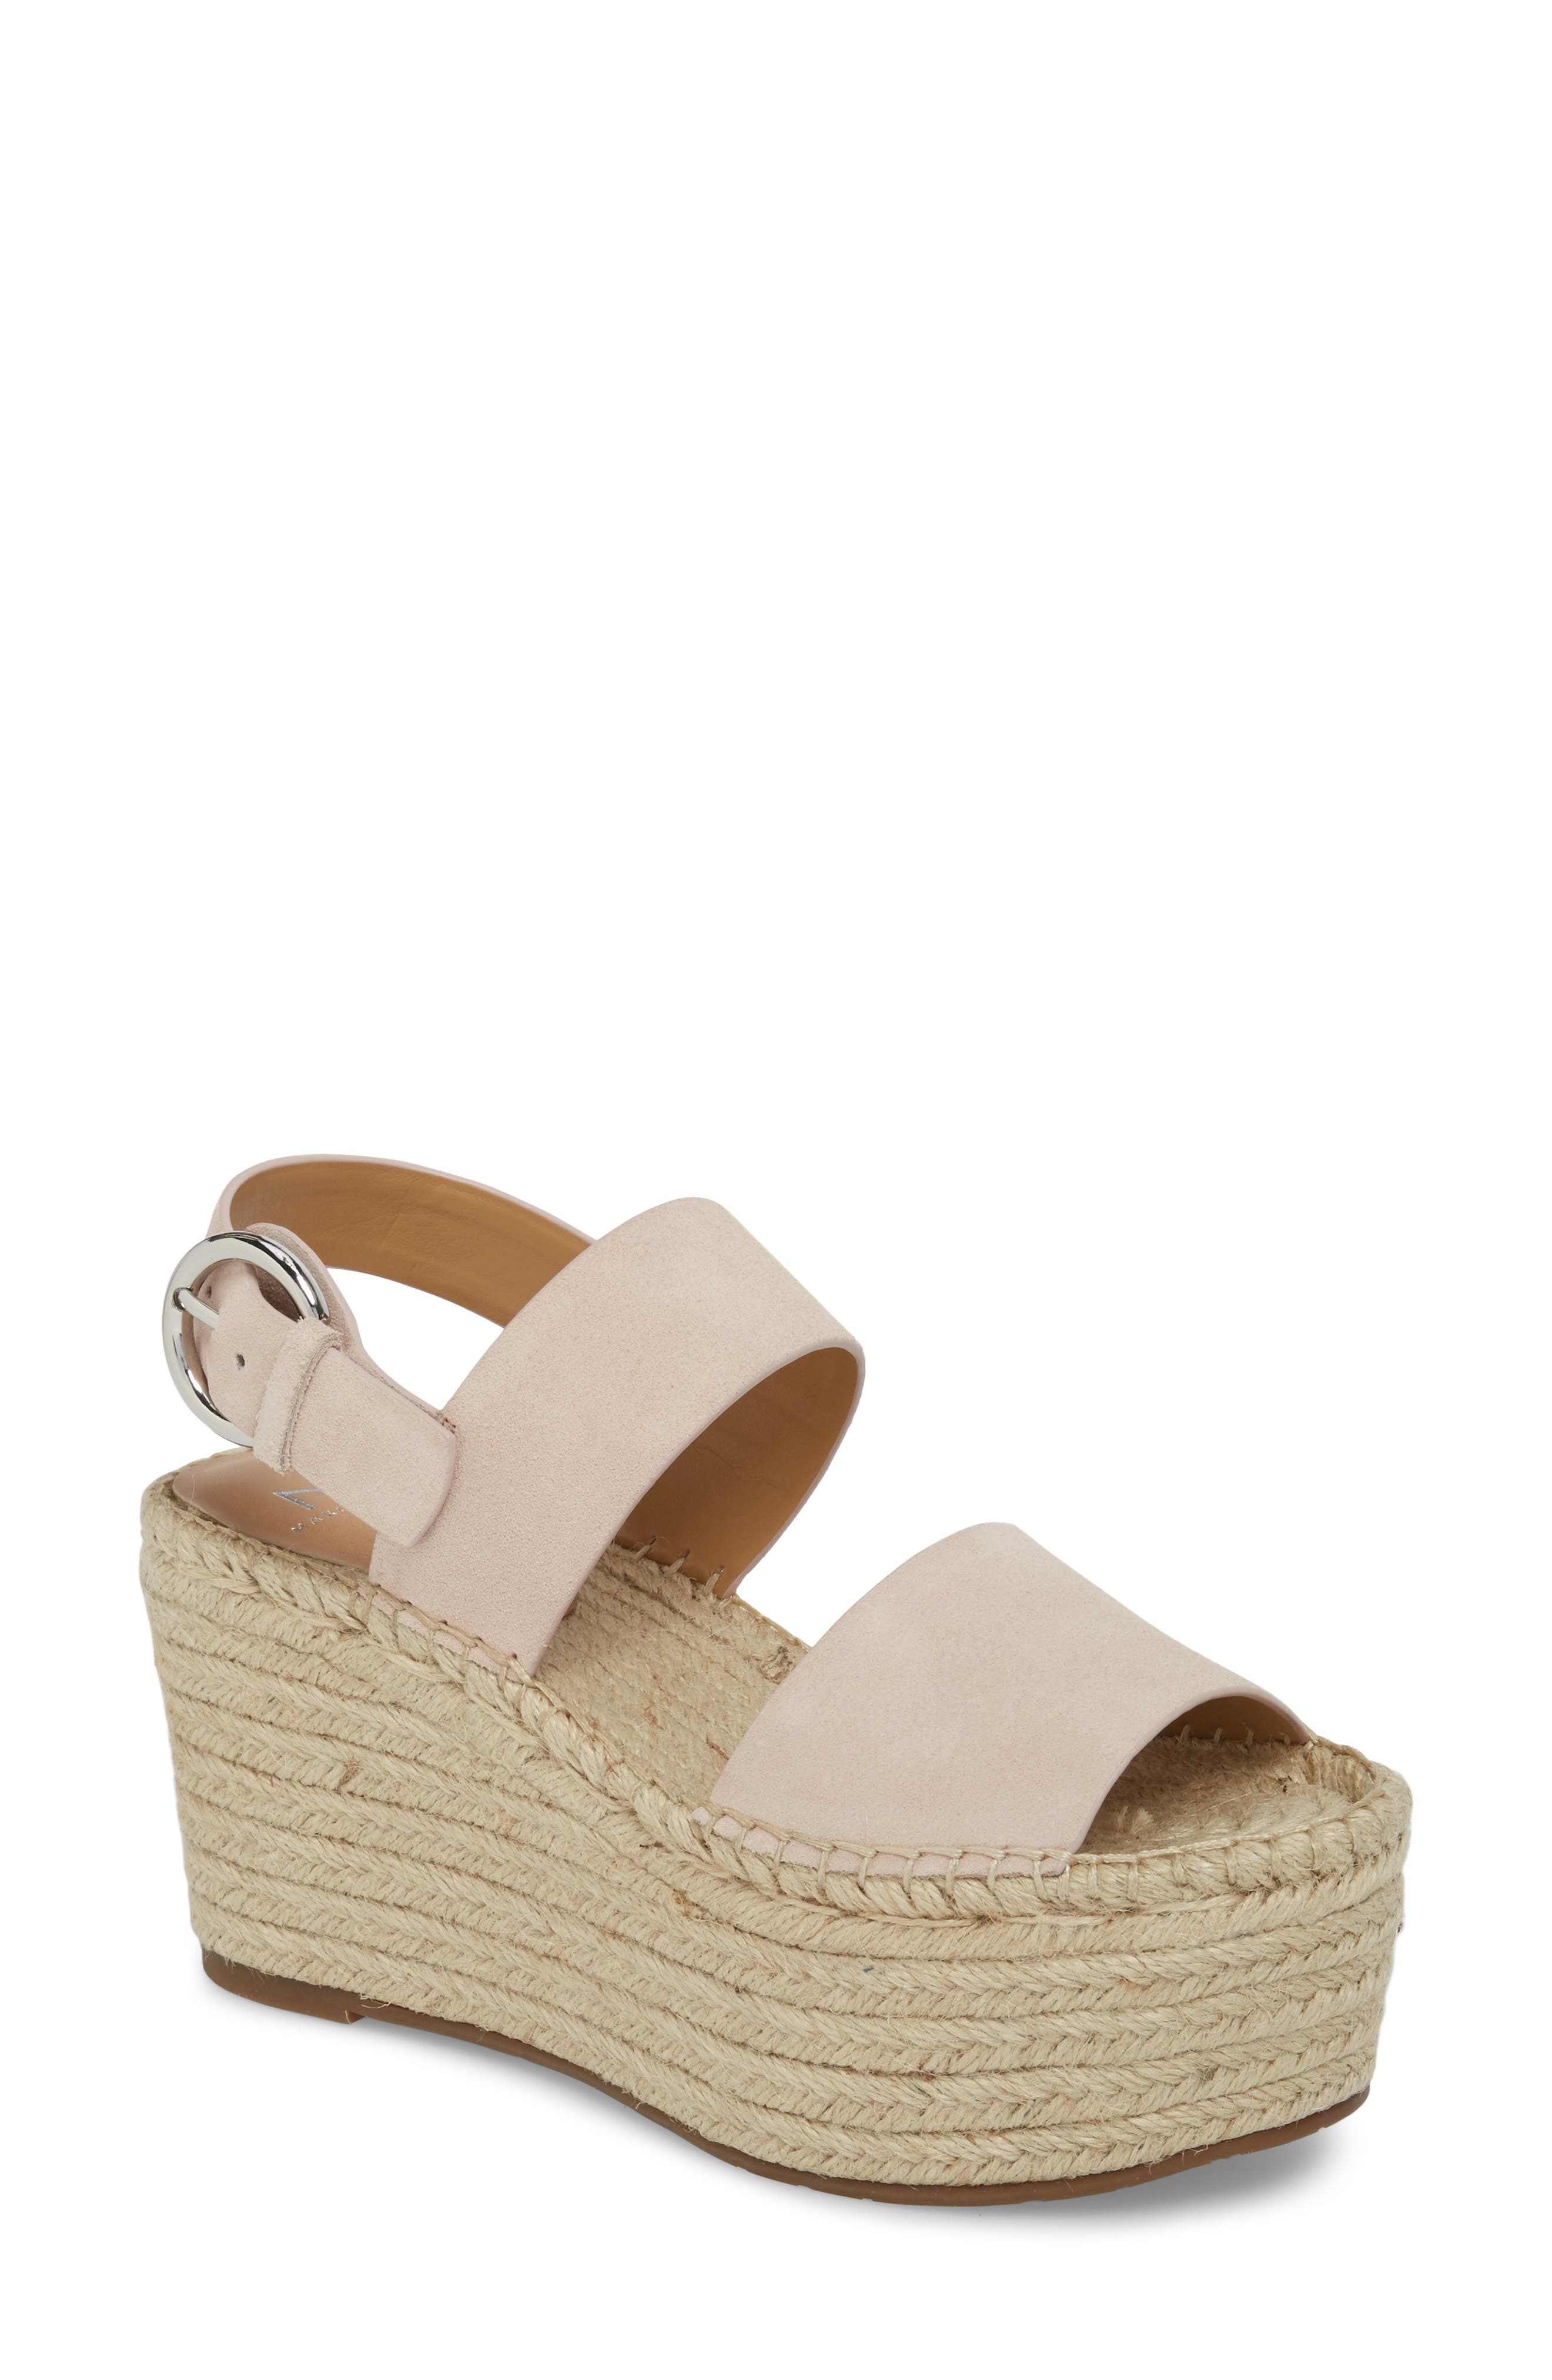 Marc Fisher LTD Renni Espadrille Platform Wedge Sandal (Women)